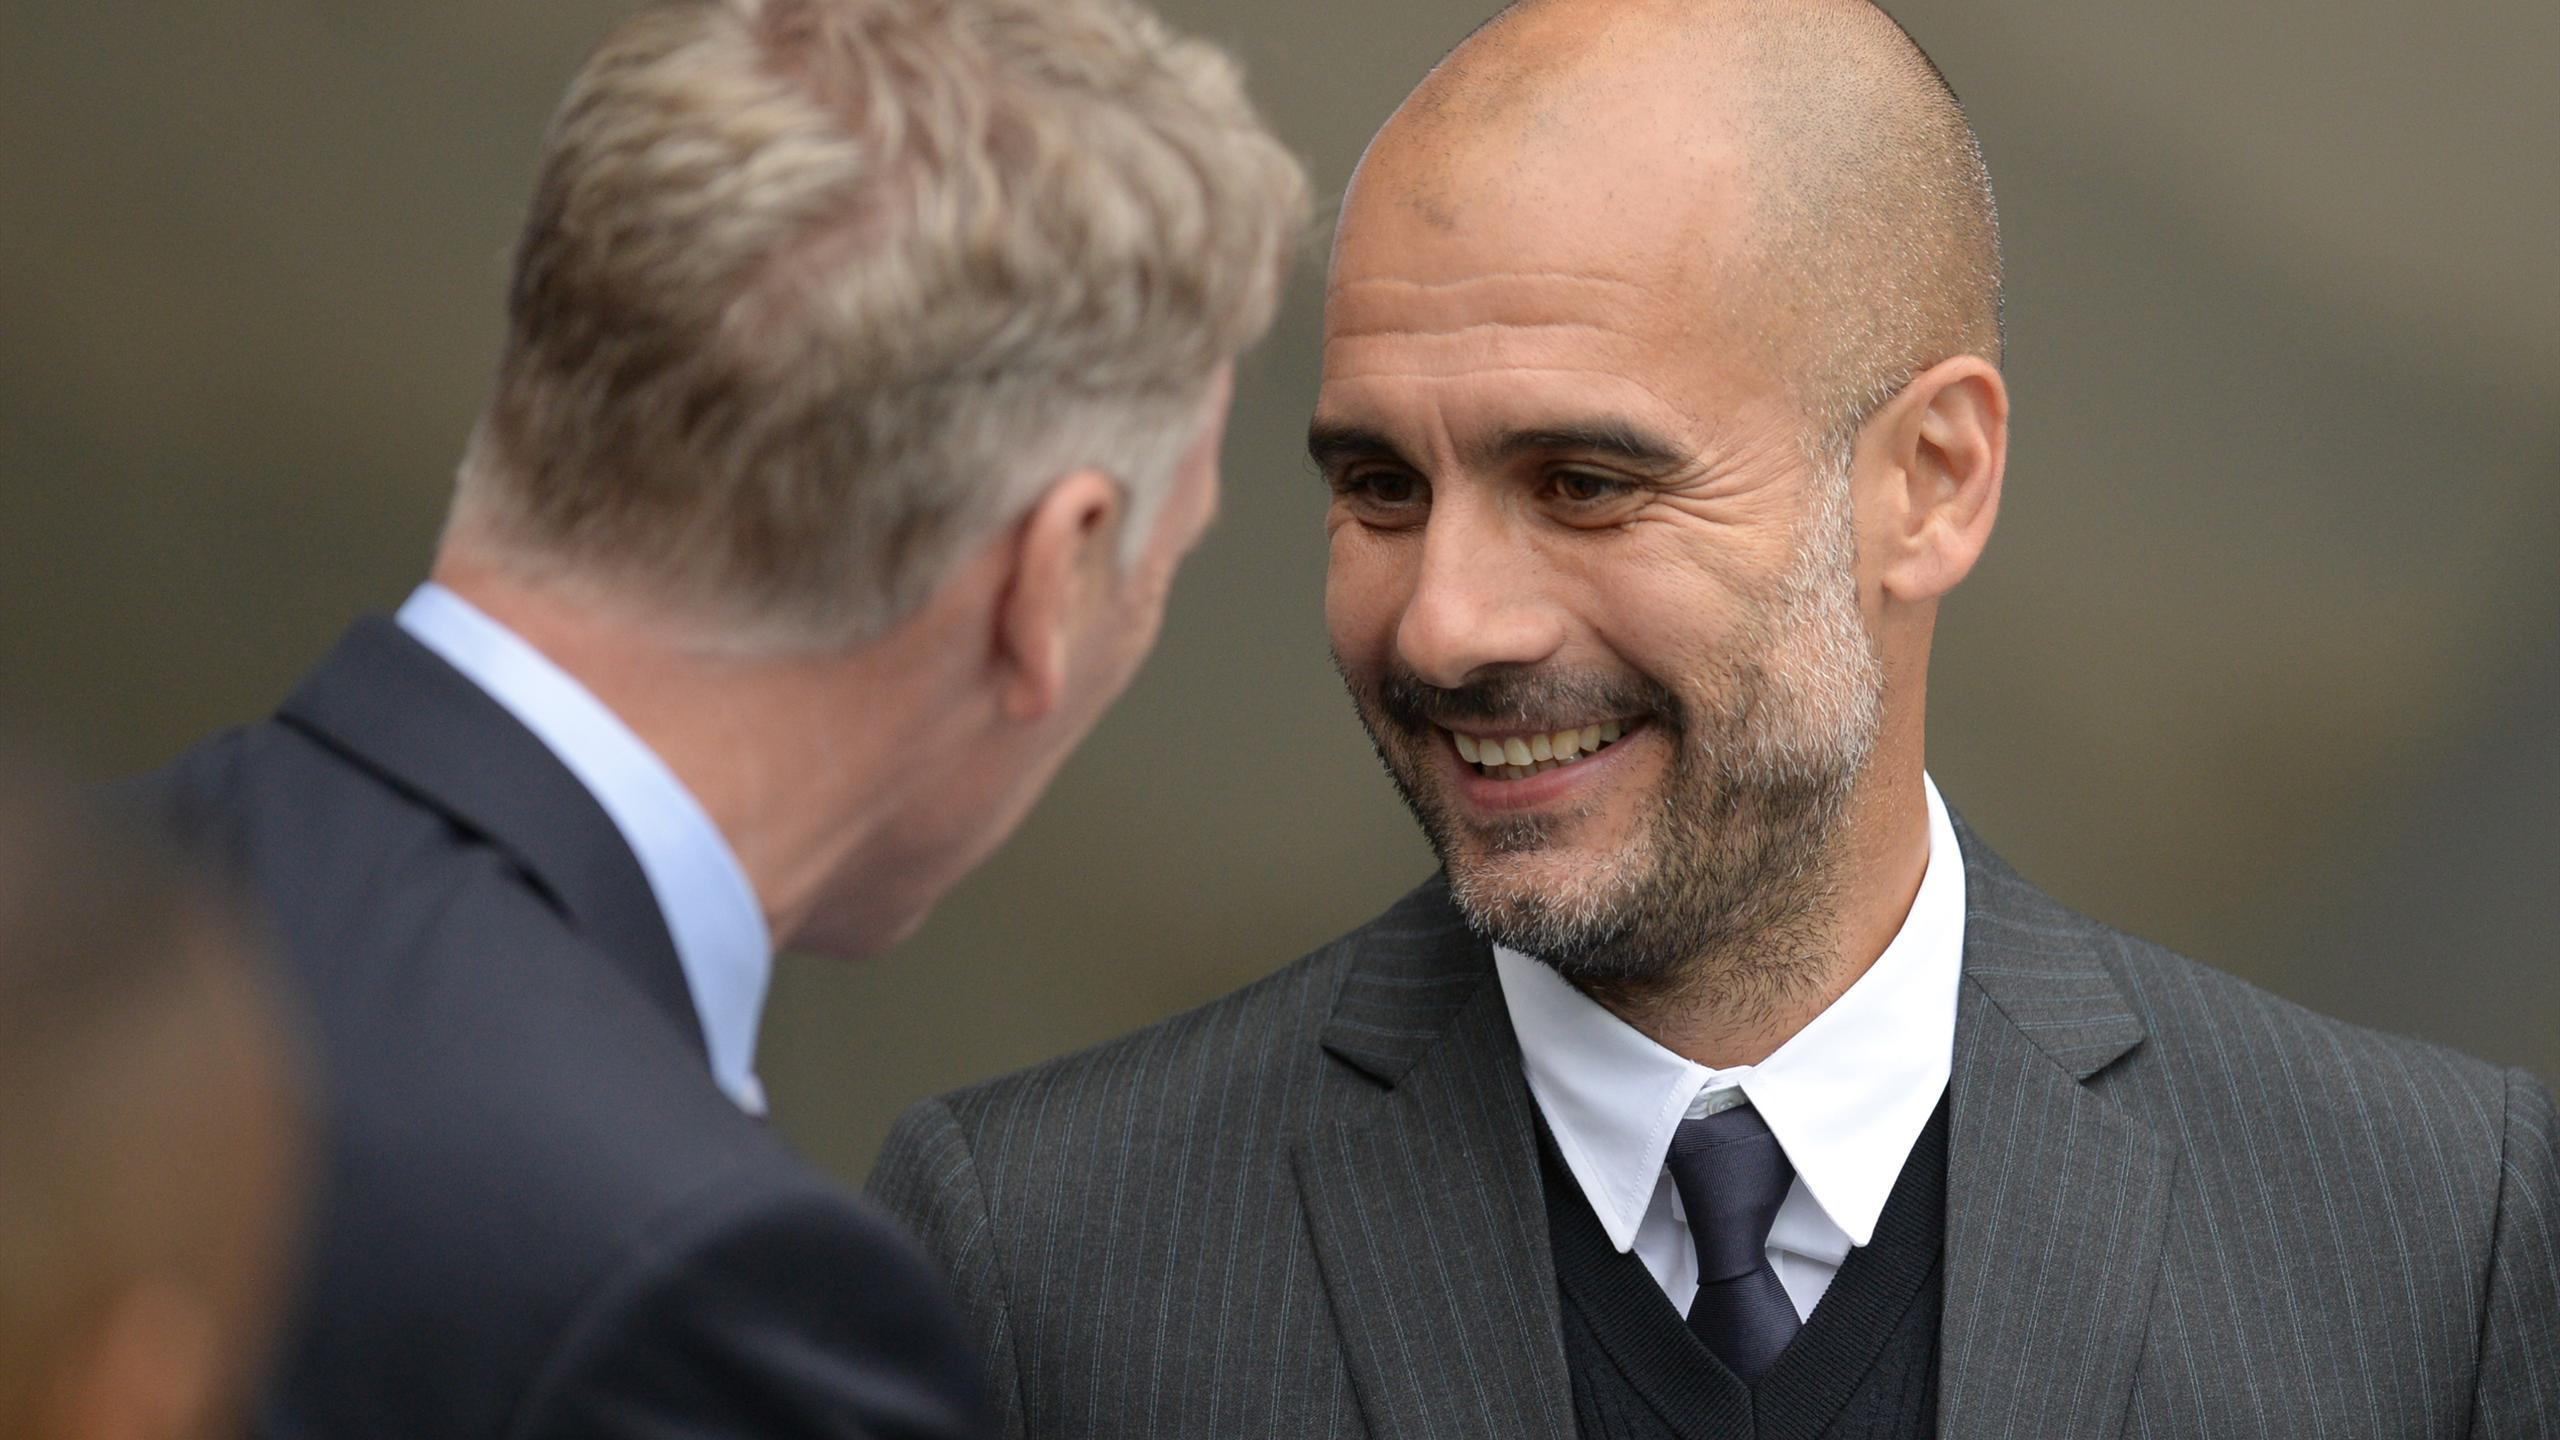 Sunderland's Scottish manager David Moyes (L) is greeted by Manchester City's Spanish manager Pep Guardiola